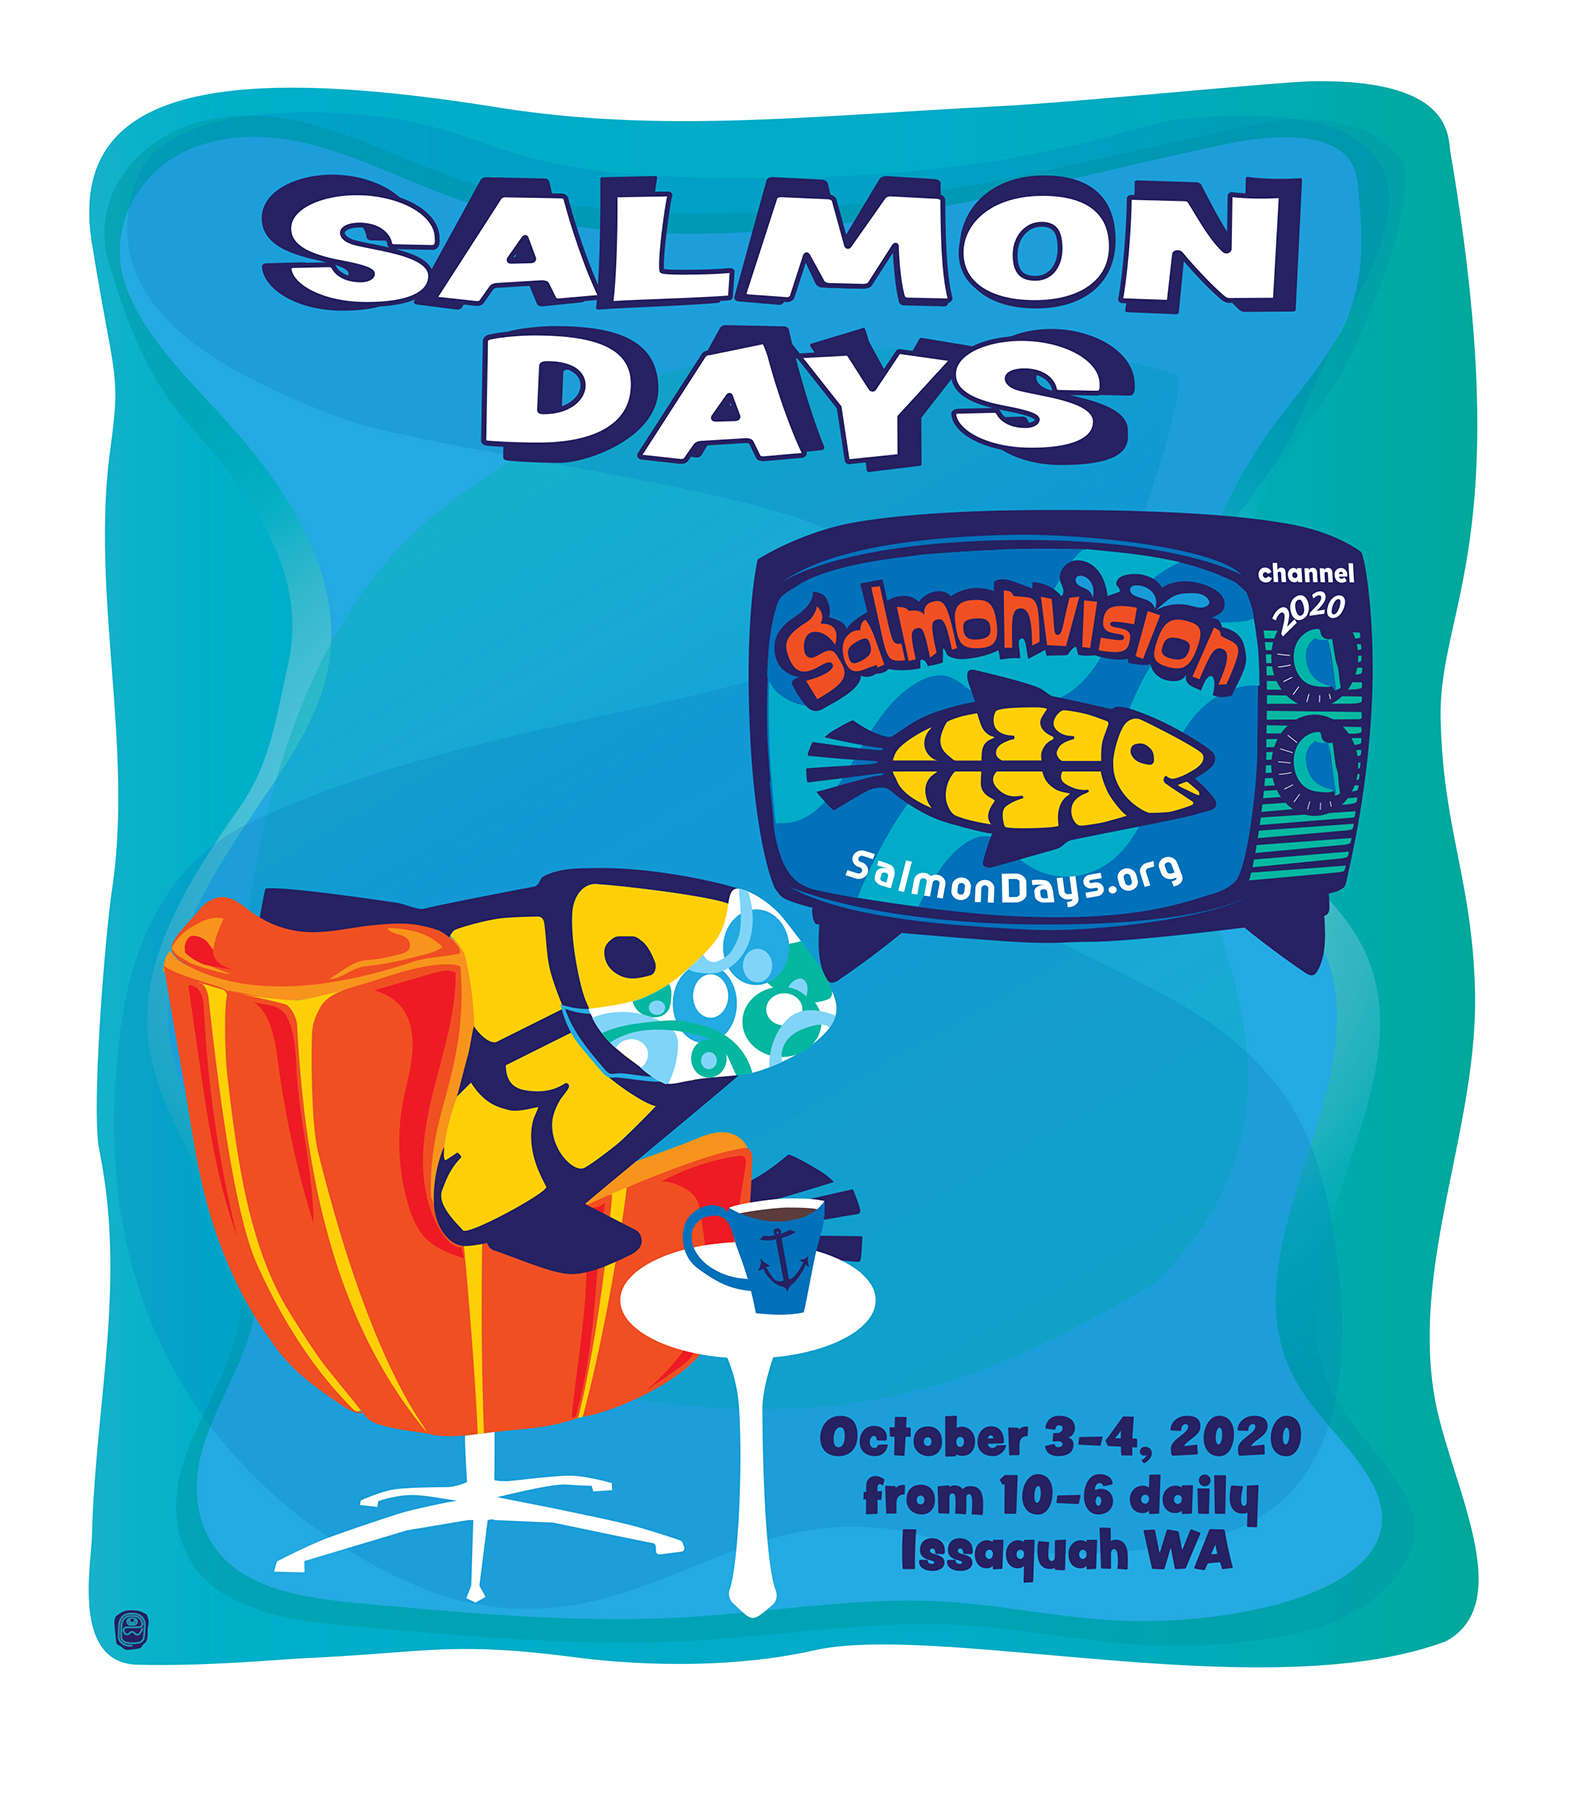 Salmon Days 2020 Artwork